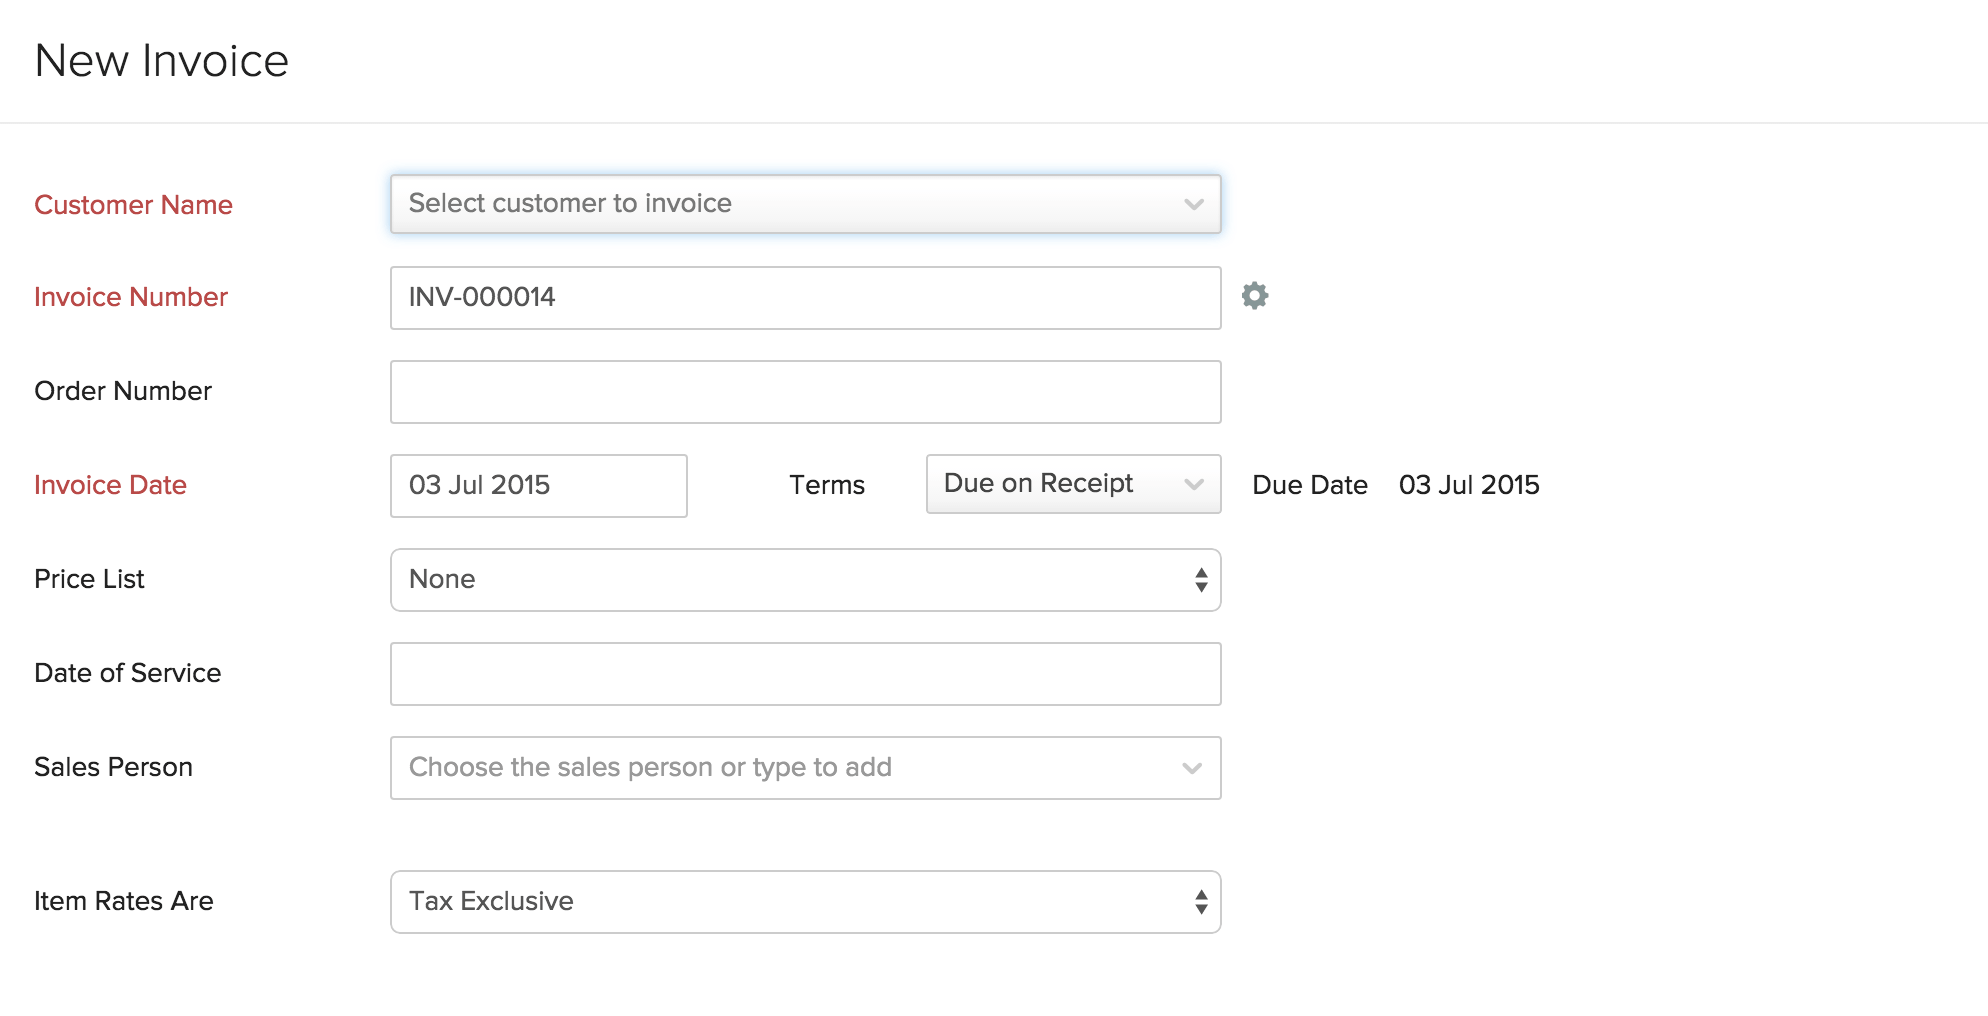 Reliefworkersus  Ravishing Invoices  User Guide  Zoho Books With Entrancing Creating New Invoice With Amusing Car Club Invoice Also Labour Invoice Template In Addition Invoice Money And Php Invoice Software As Well As Send Invoice To Buyer Additionally Sample Of A Proforma Invoice From Zohocom With Reliefworkersus  Entrancing Invoices  User Guide  Zoho Books With Amusing Creating New Invoice And Ravishing Car Club Invoice Also Labour Invoice Template In Addition Invoice Money From Zohocom